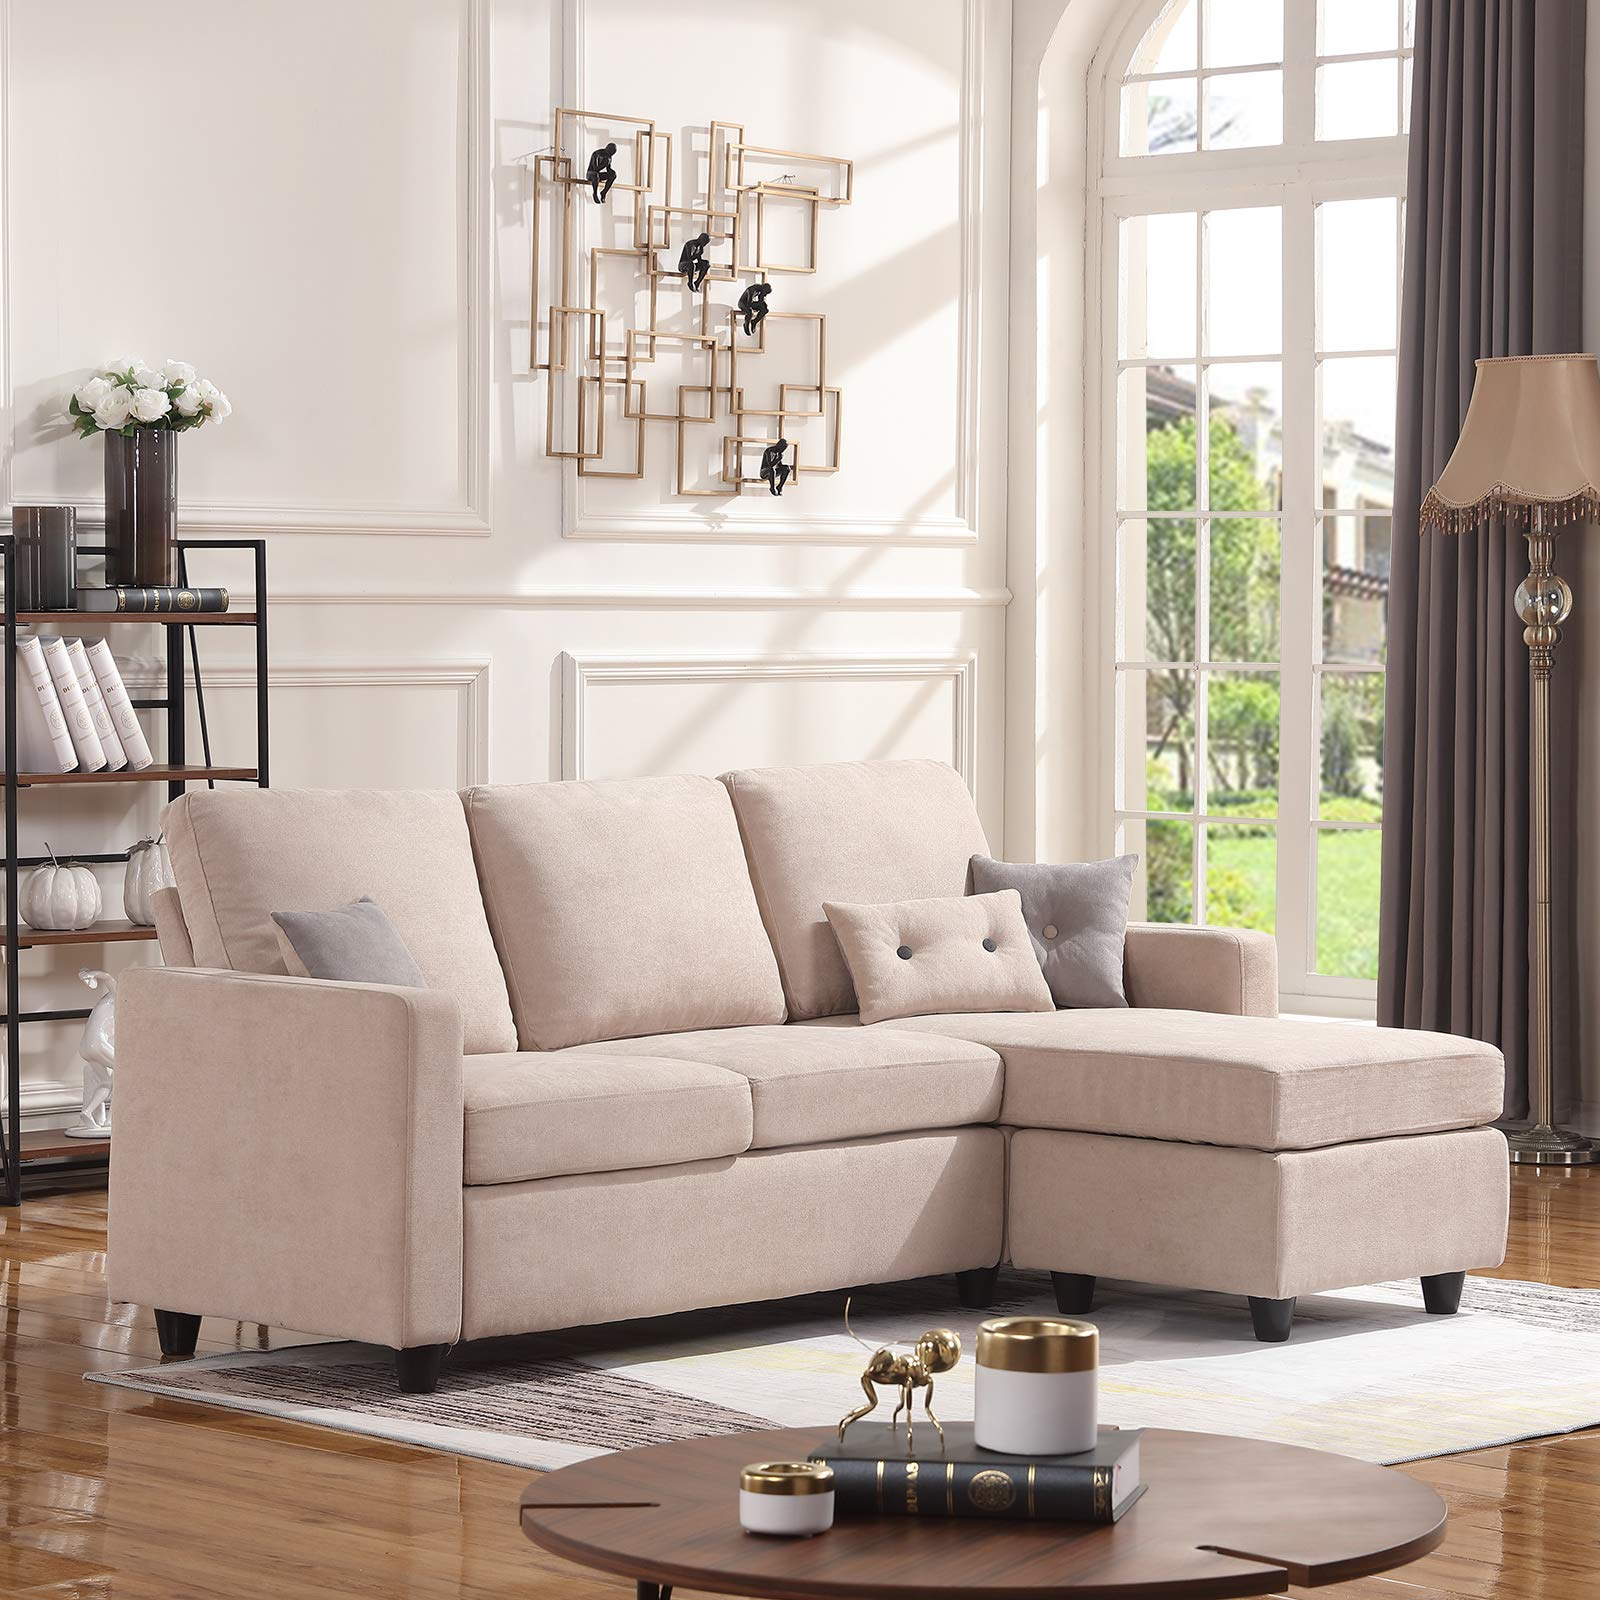 Small Furniture Store: HONBAY Convertible Sectional Sofa Couch, L-Shaped Couch